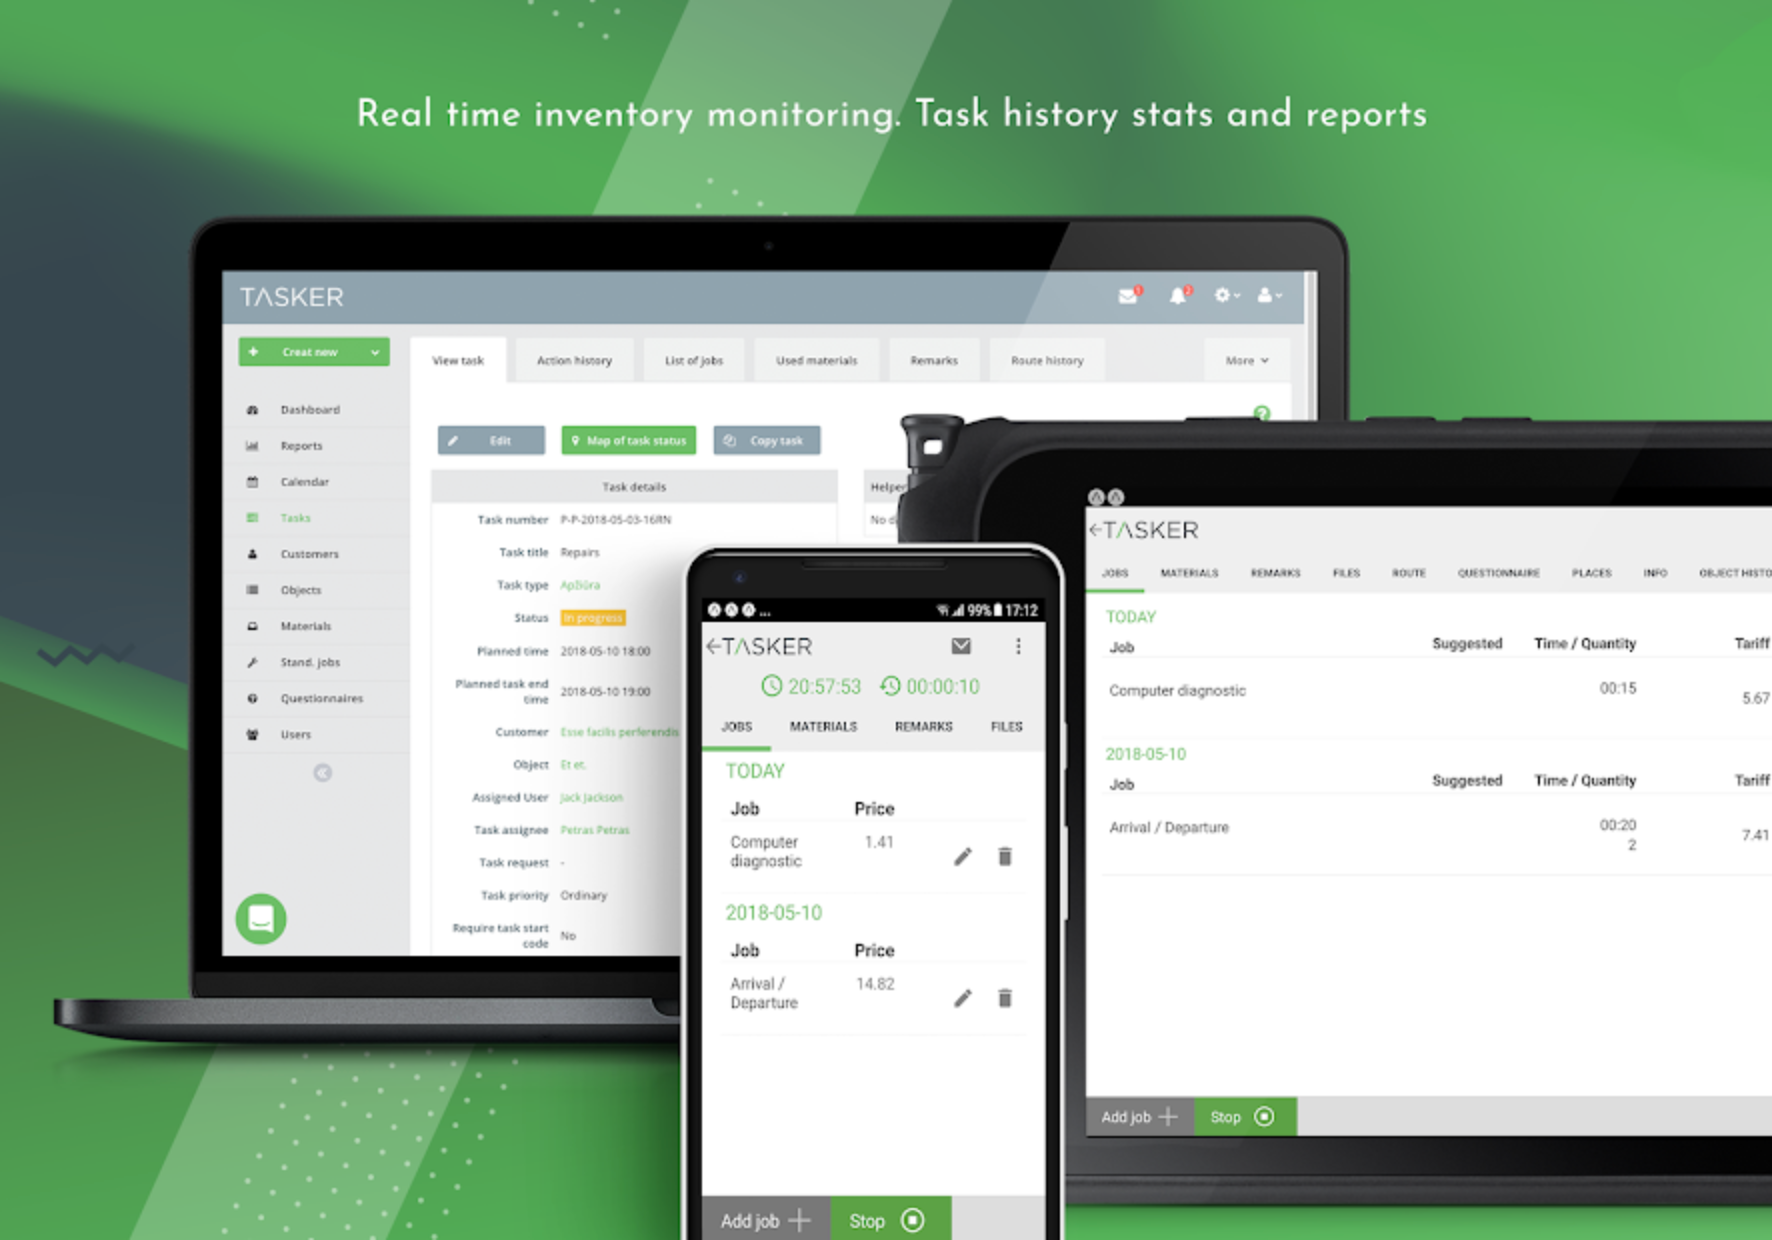 View real-time inventory monitoring and track history stats and reports via any device